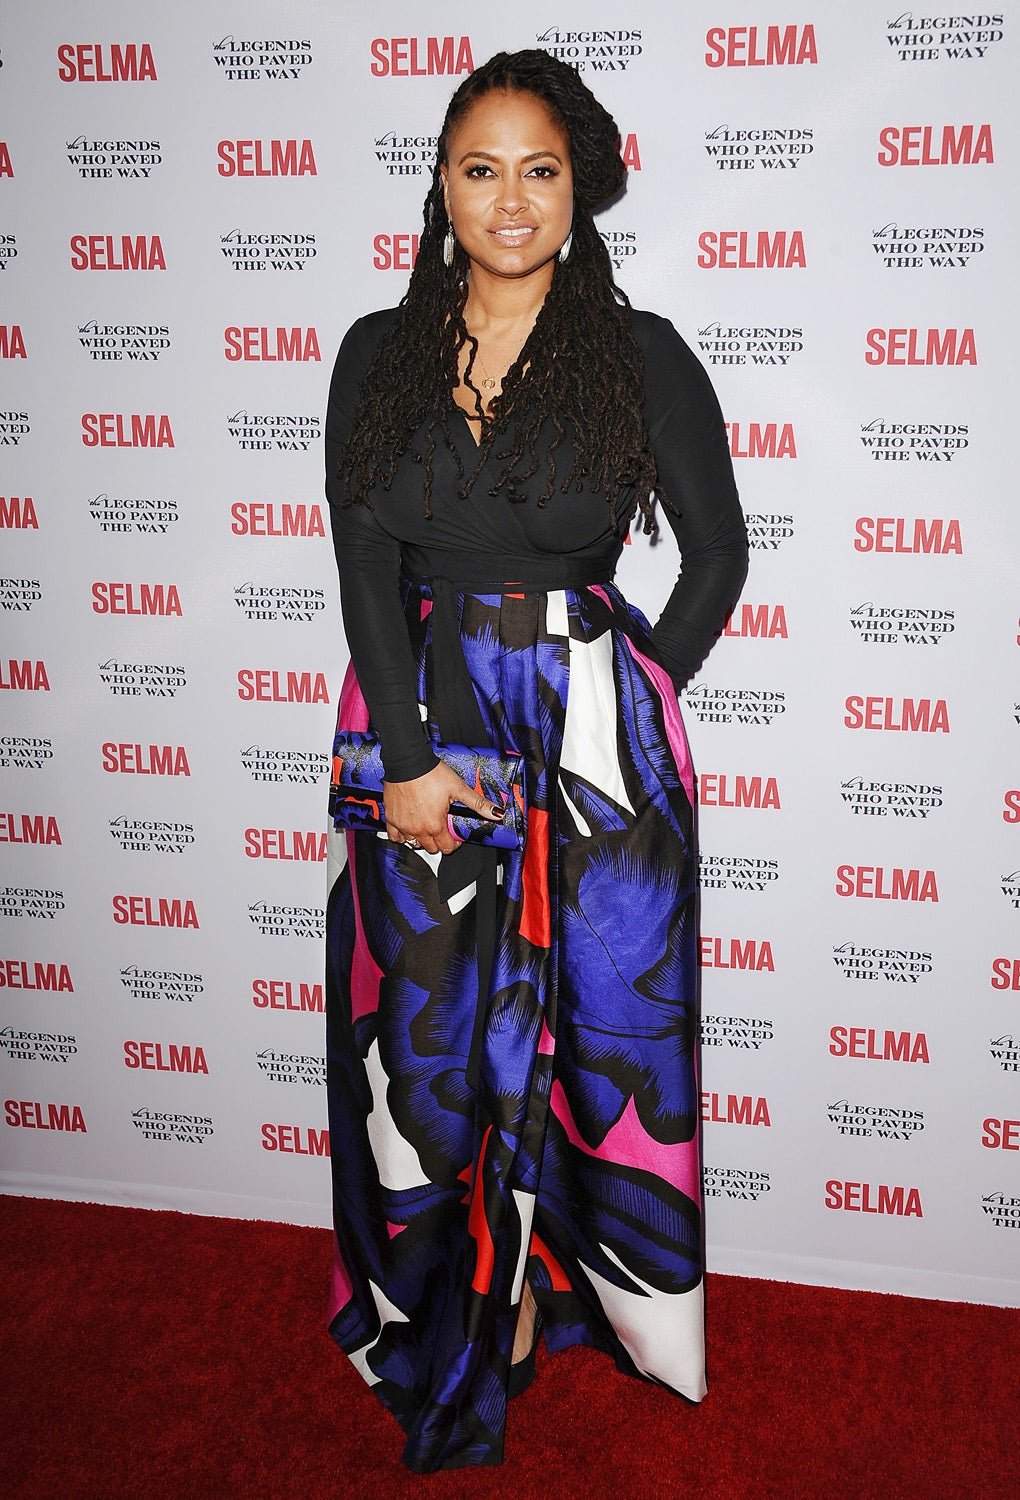 'Selma' Director Ava DuVernay Makes History as First Black Female Director Nominated for Golden Globe